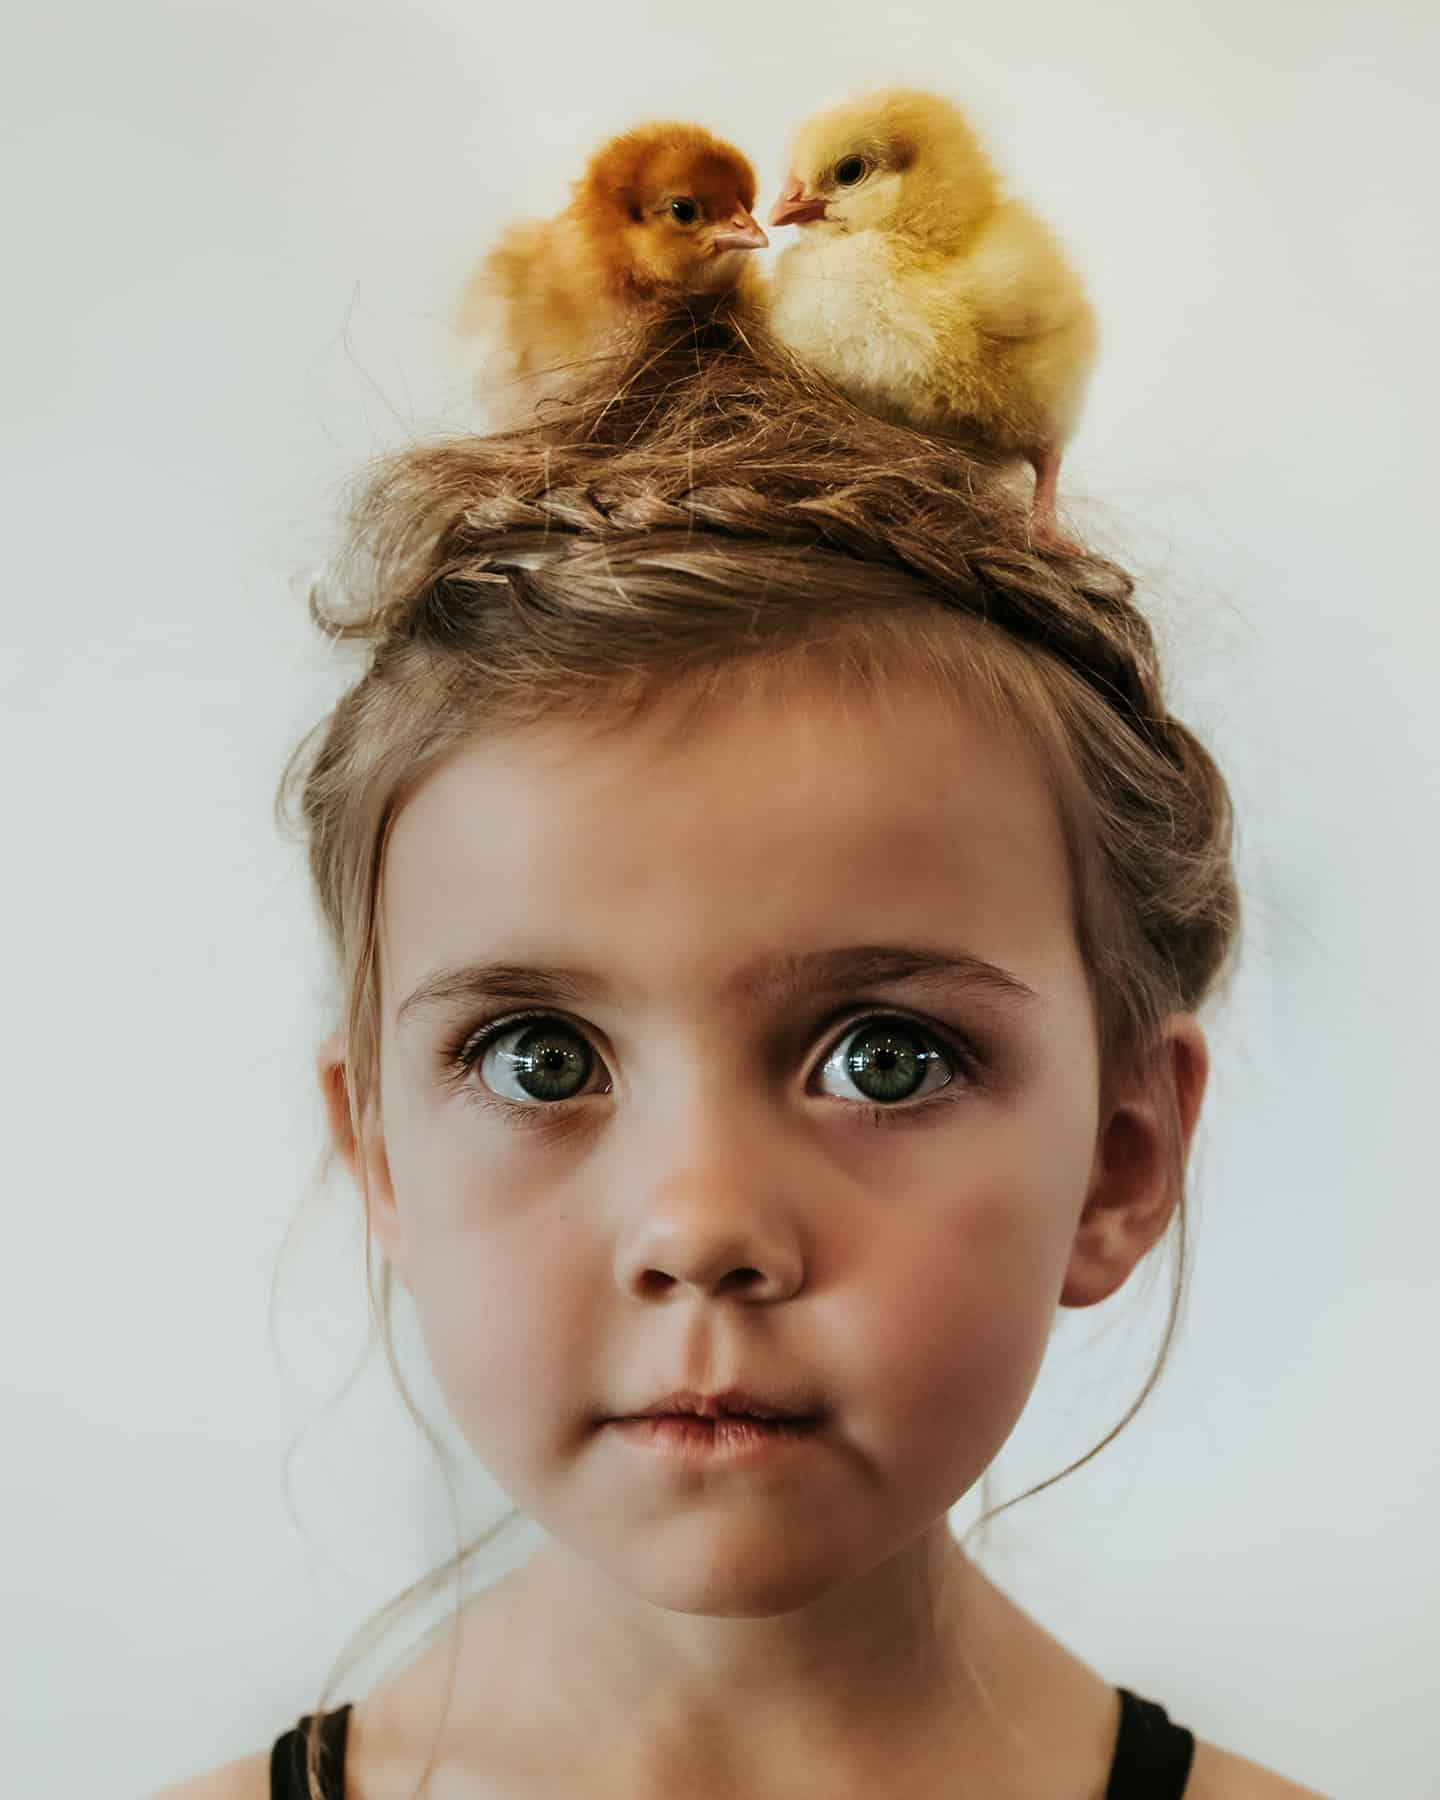 A portrait of a young girl with two ducklings on her head